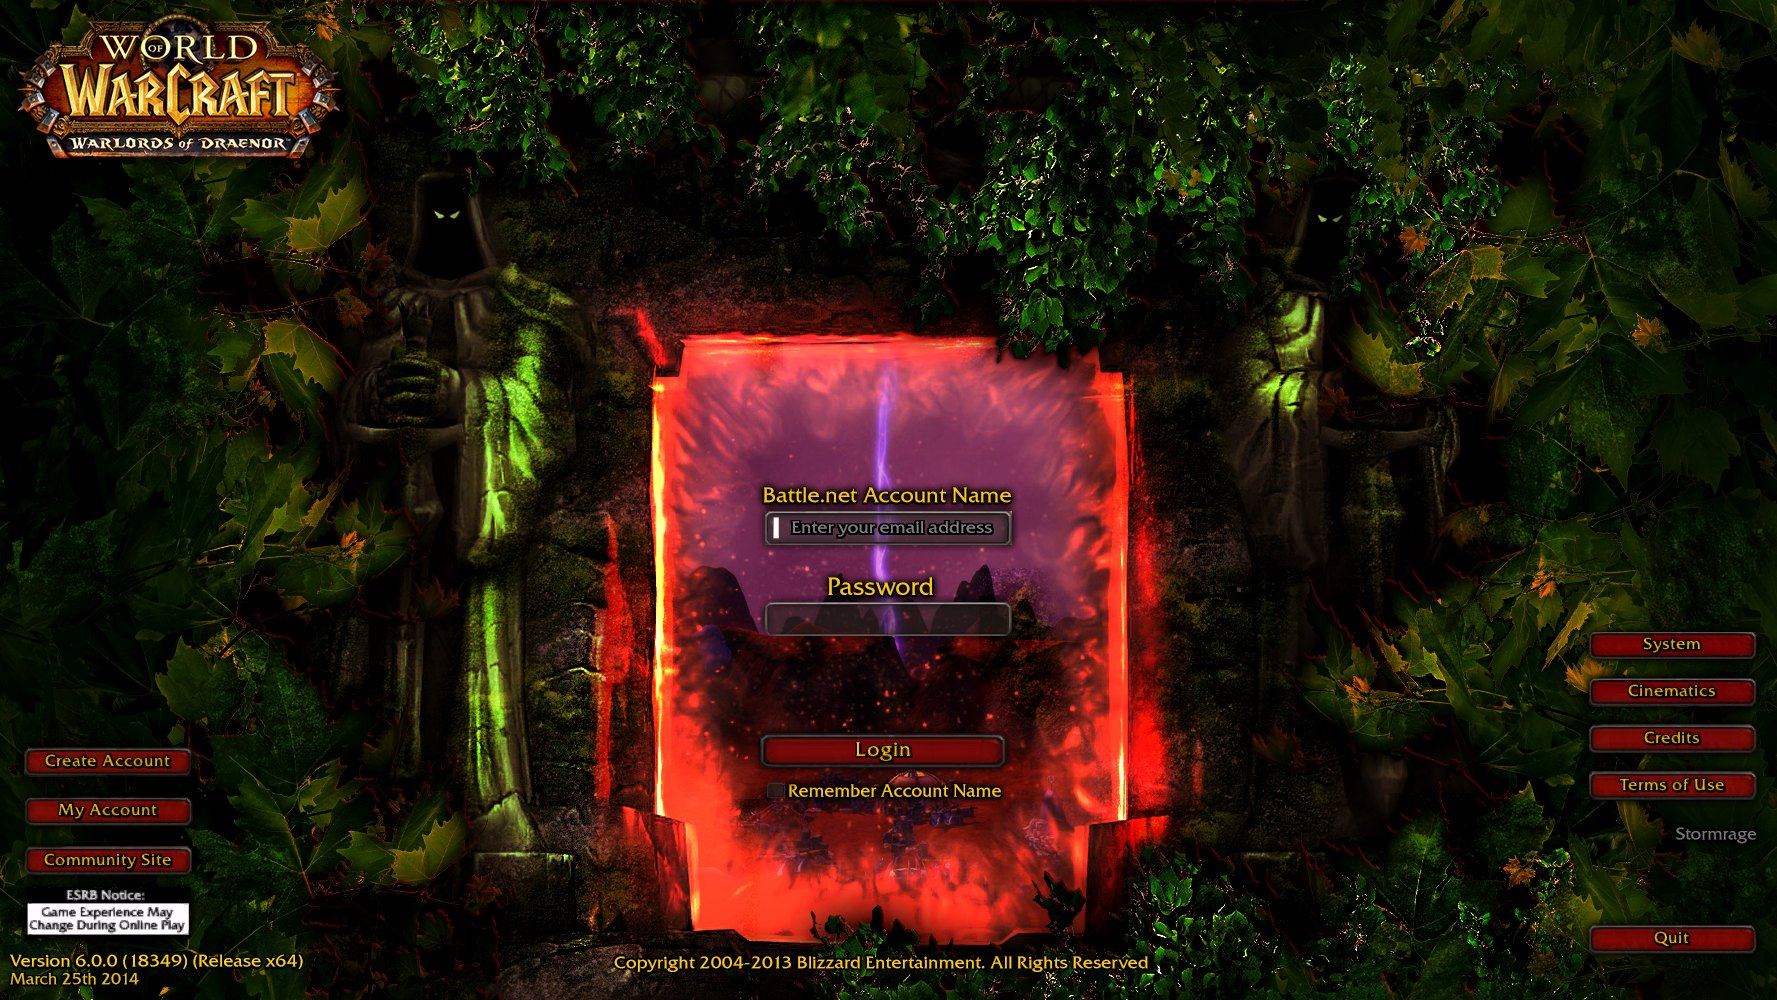 Jungle Wallpaper World Of Warcraft: Warlords Of Draenor Login Screen *Updated* By Arthzull On